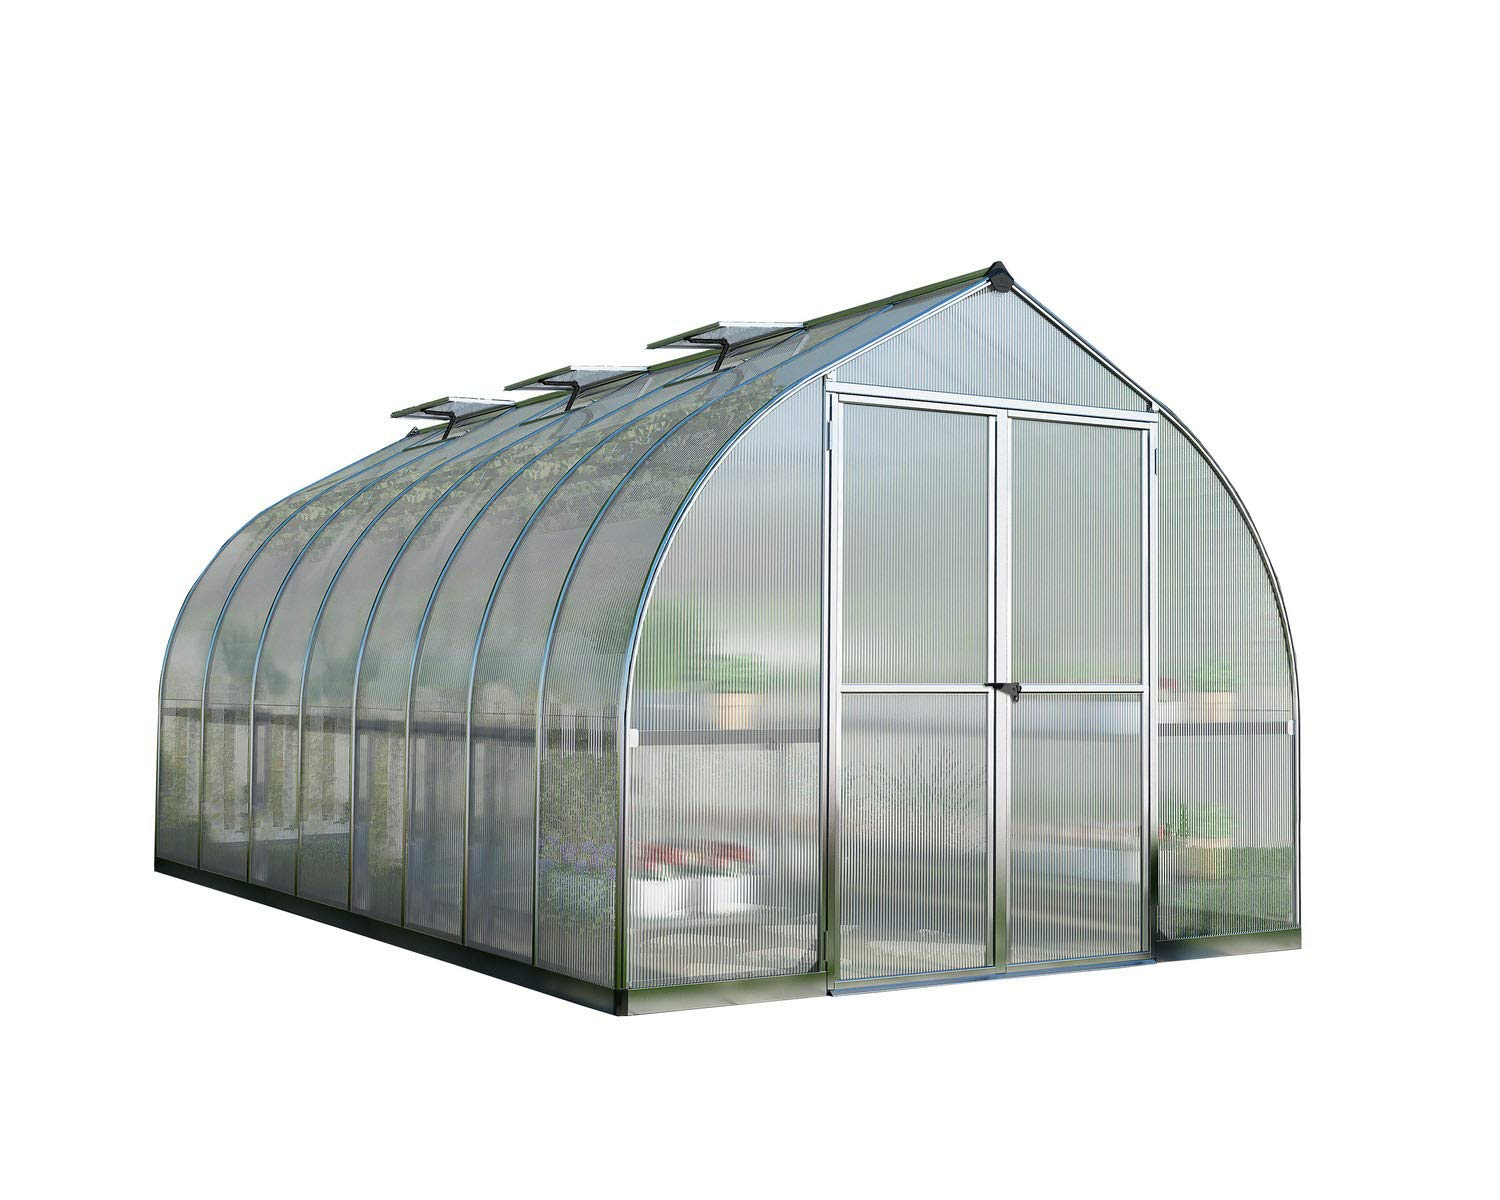 Palram Bella Hobby Greenhouse, 8' x 16', Silver with Twin Wall Glazing